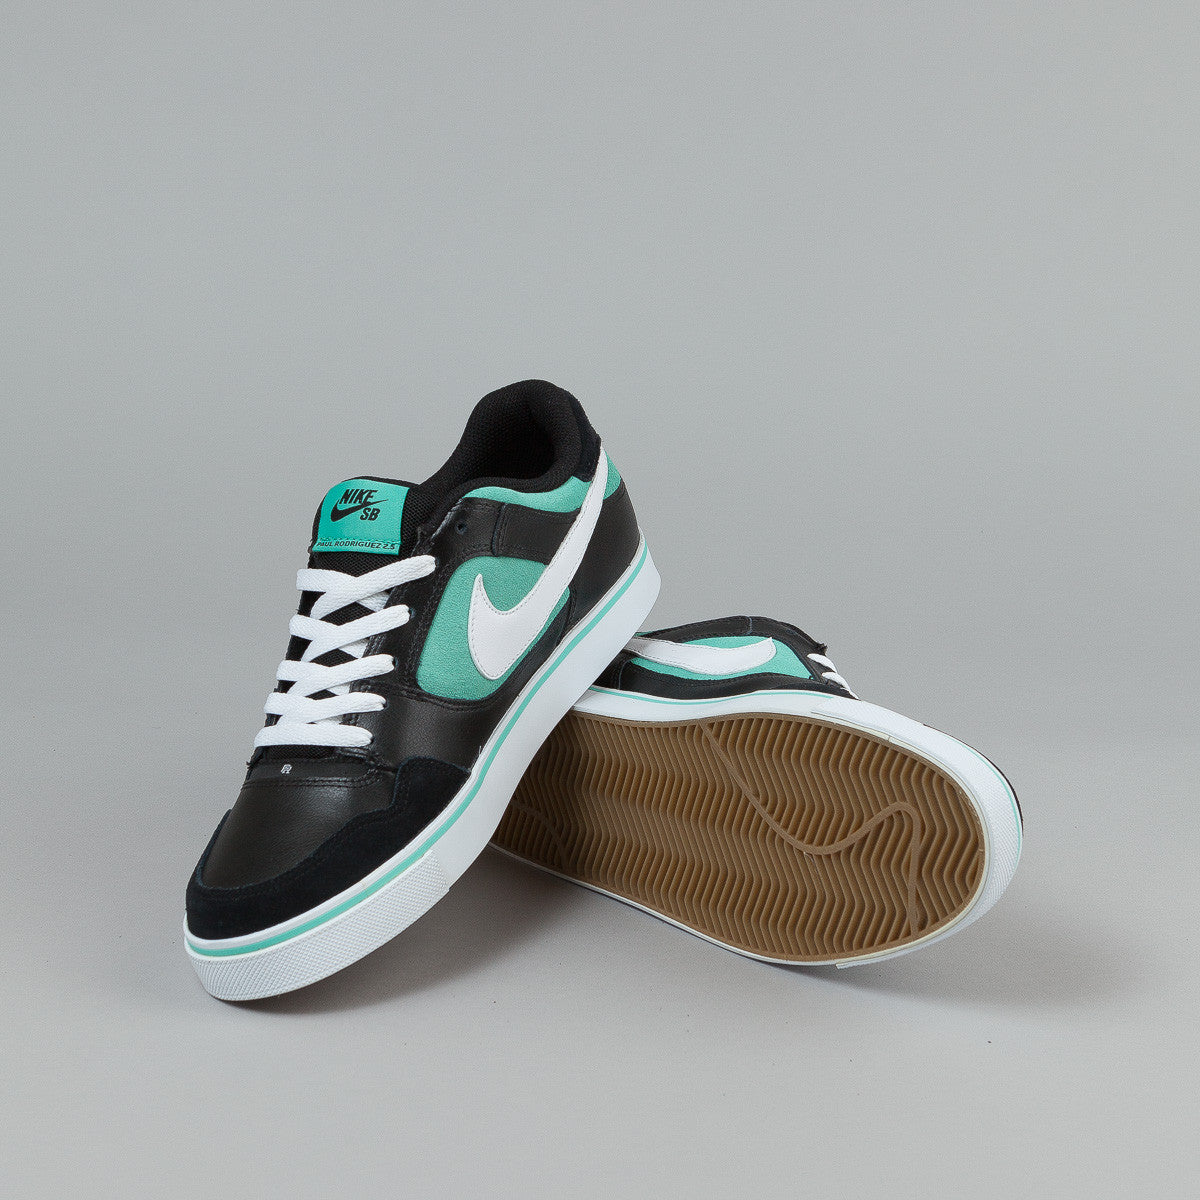 Nike SB Paul Rodriguez 2.5 Shoes - Black / White / Azure